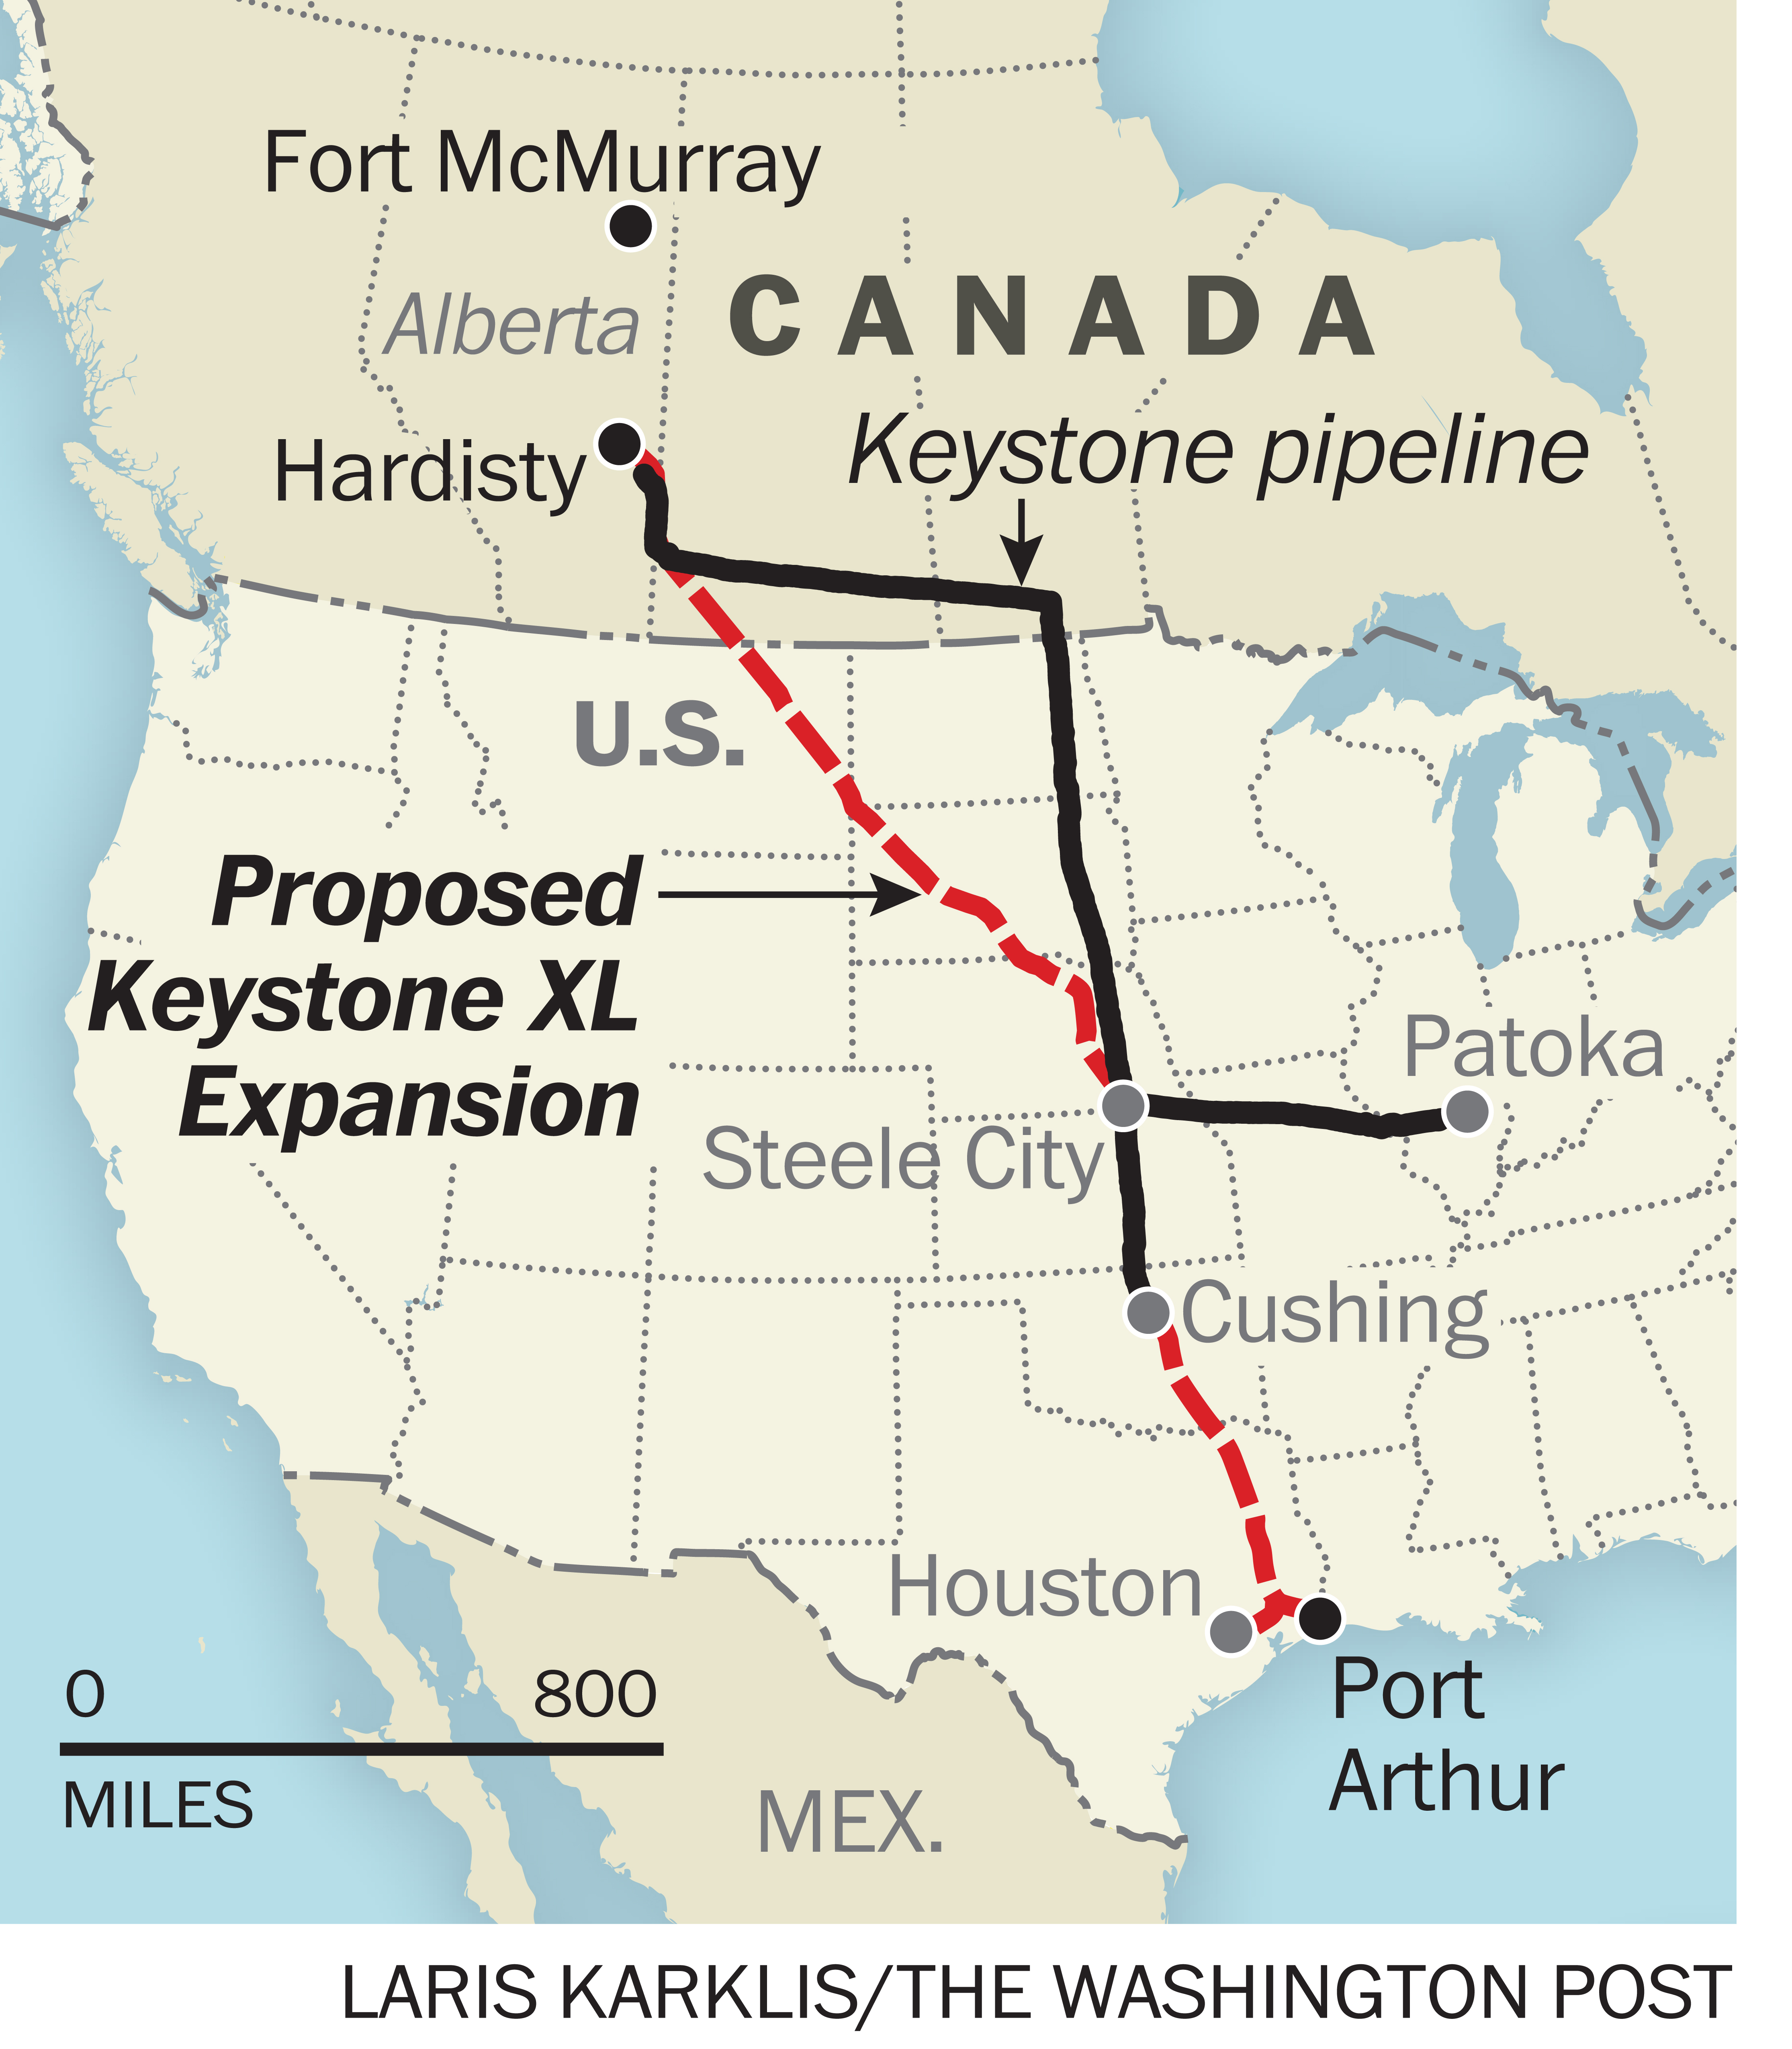 keystone pipeline The controversial keystone xl oil pipeline failed to win approval in the senate tonight by one vote, a blow to louisiana sen mary landrieu who hoped to be able to push it through.